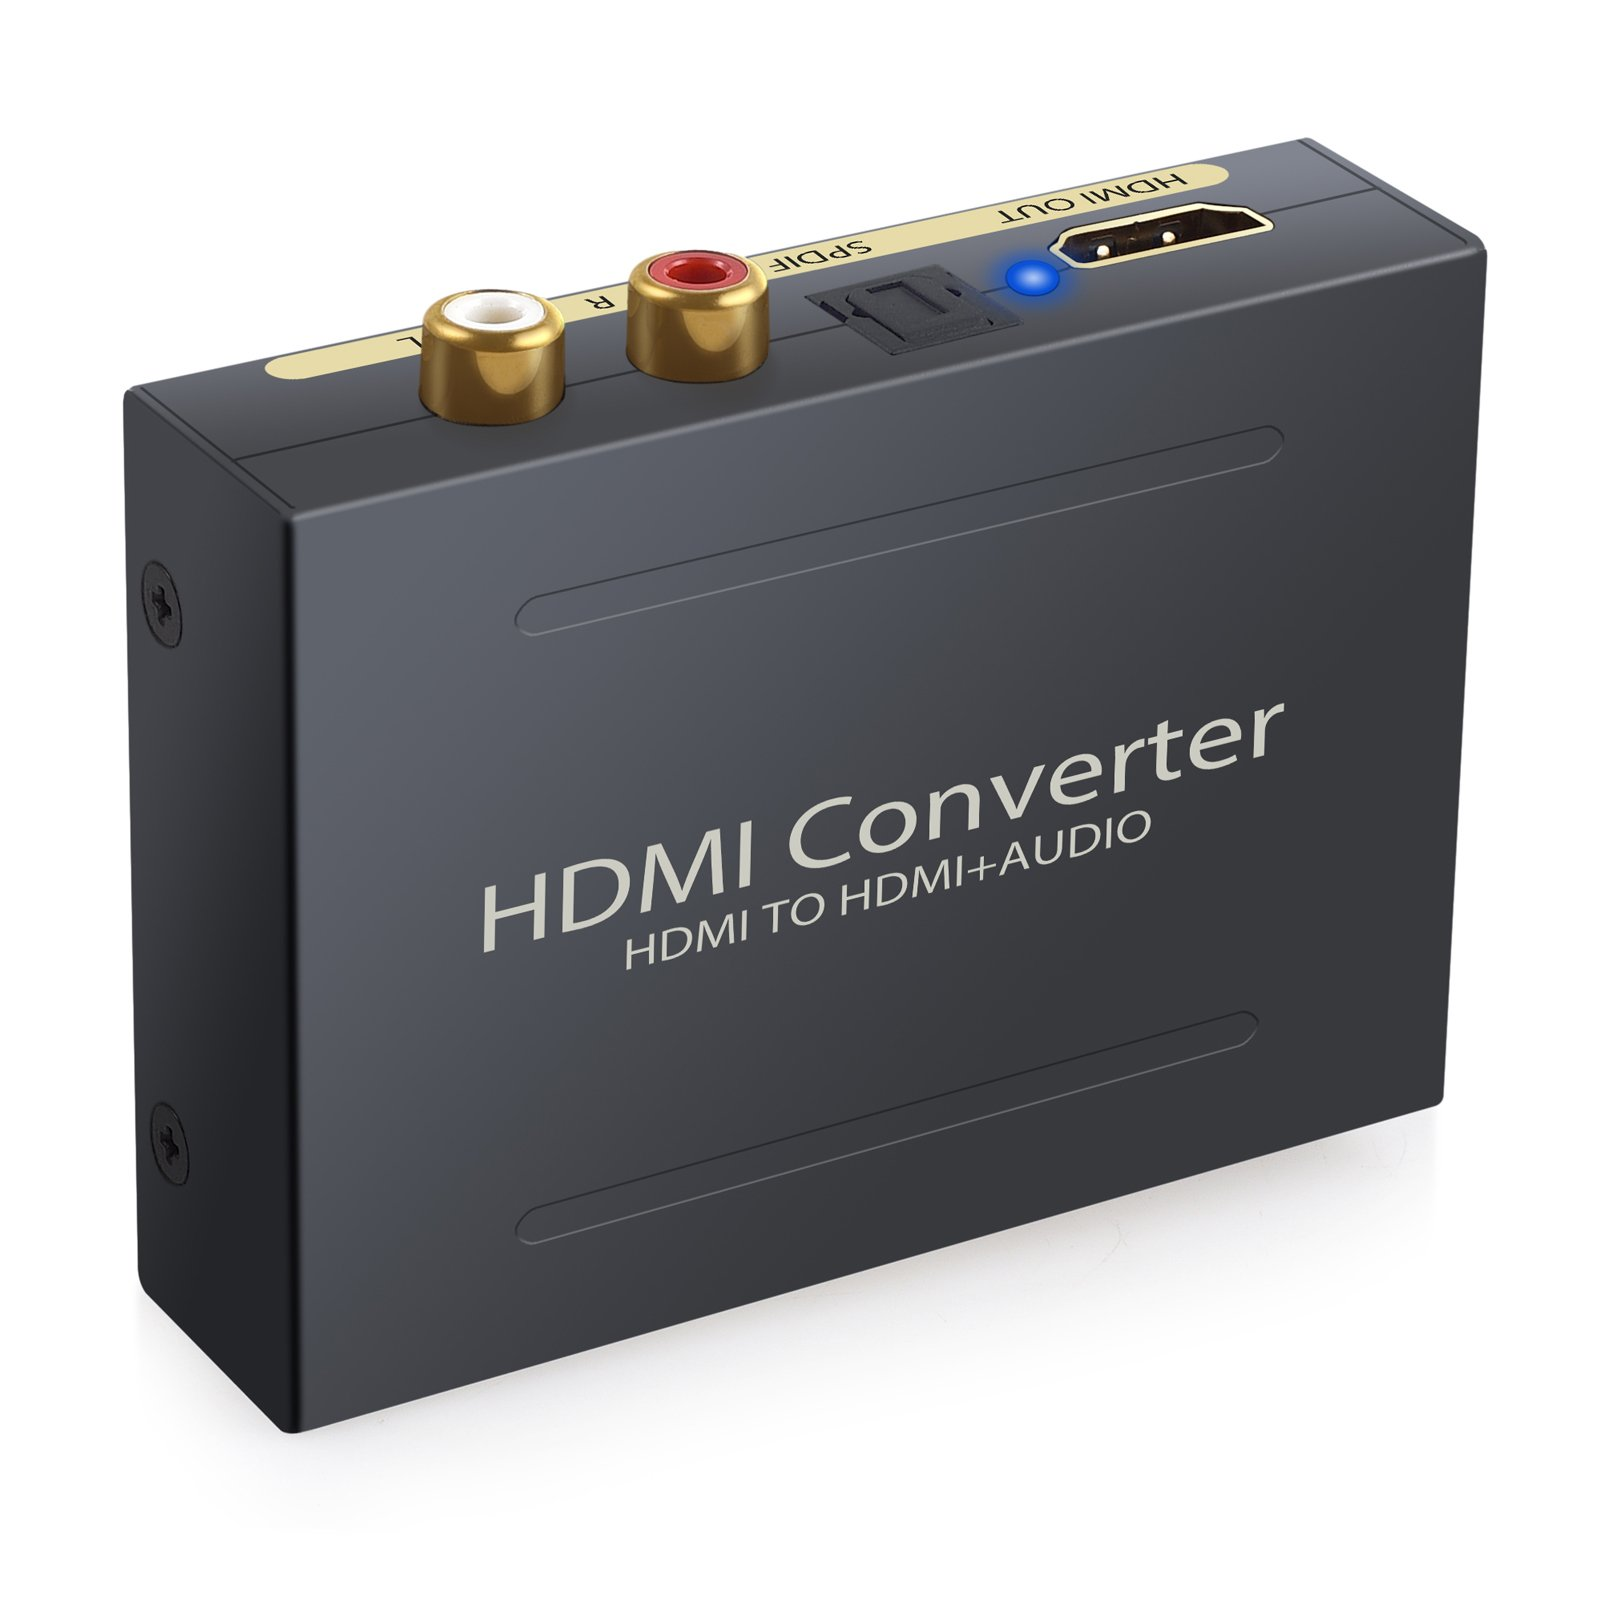 LiNKFOR HDMI Audio Extractor HDMI to Optical Spdif Toslink Converter HDMI Video Adapter Splitter DAC HD Digital to Analog Stereo R/L Audio Extractor for Blu-ray DVD Player Xbox One SKY HD Box PS3 PS4 by LiNKFOR